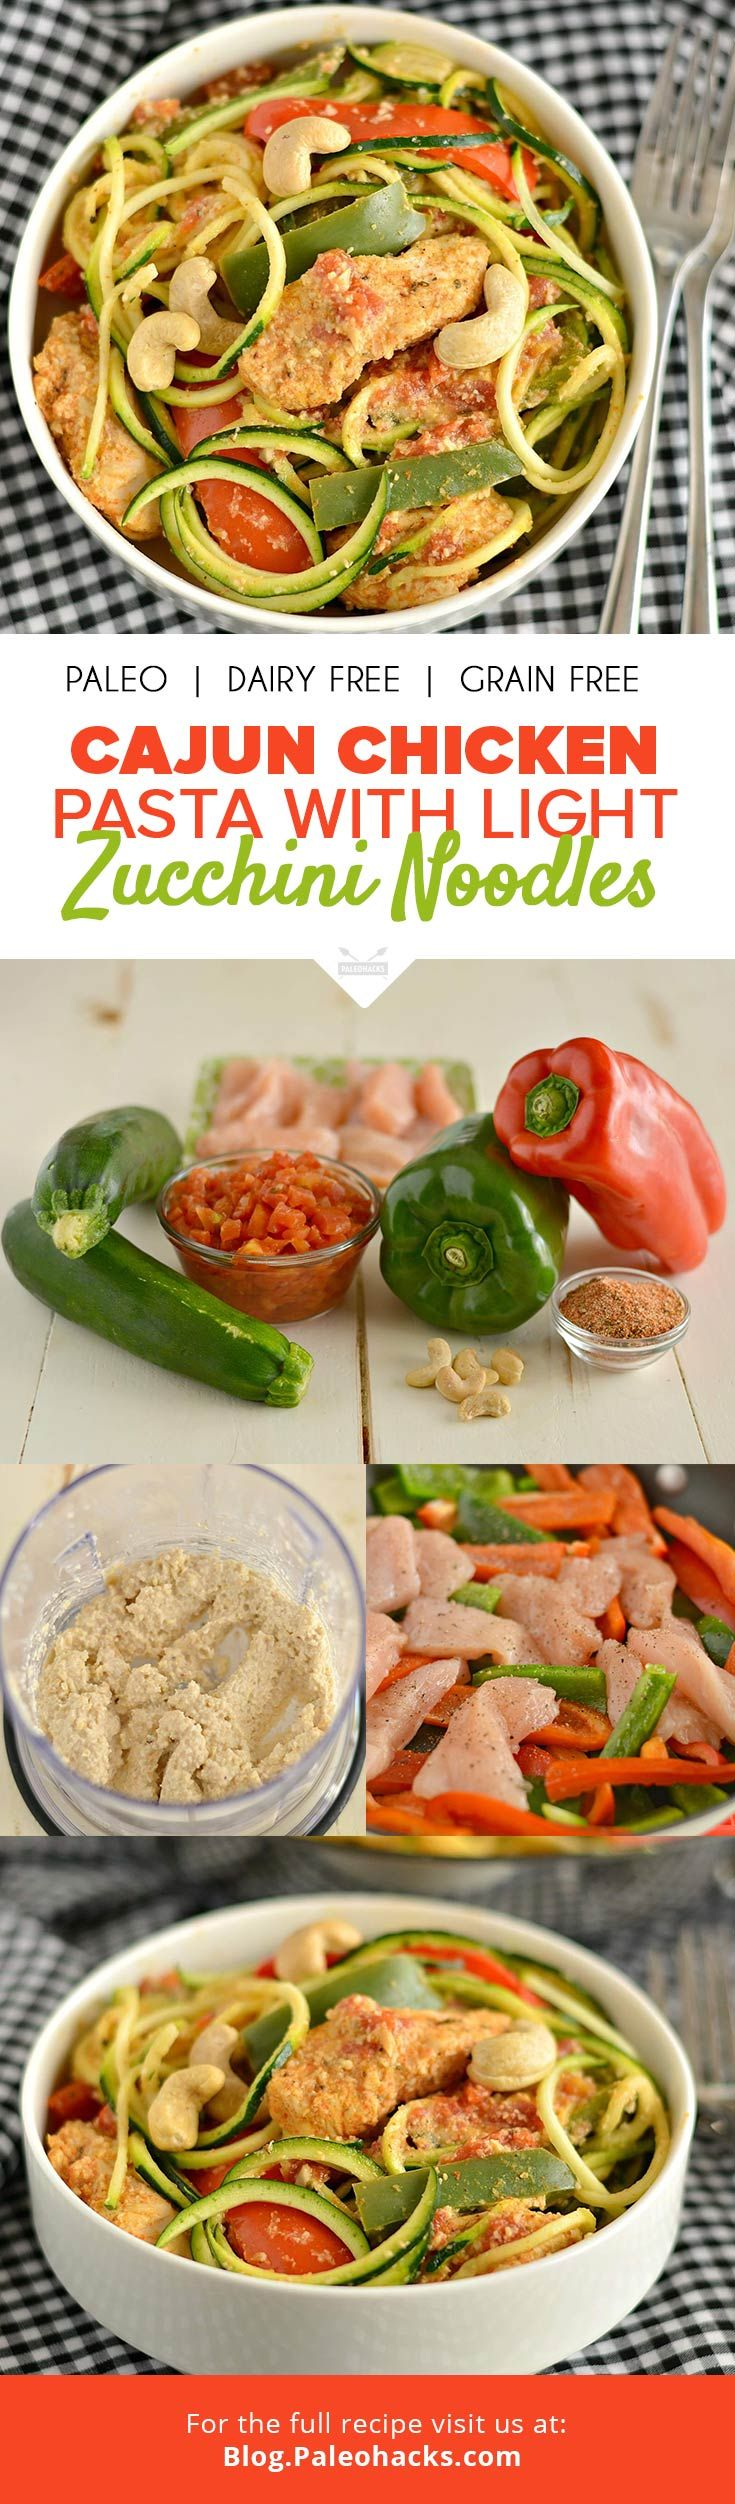 This 20-minute Cajun Chicken Pasta with Light Zucchini Noodles is guaranteed to satisfy any spicy craving! Get the recipe here: http://paleo.co/cajunchuckpasta